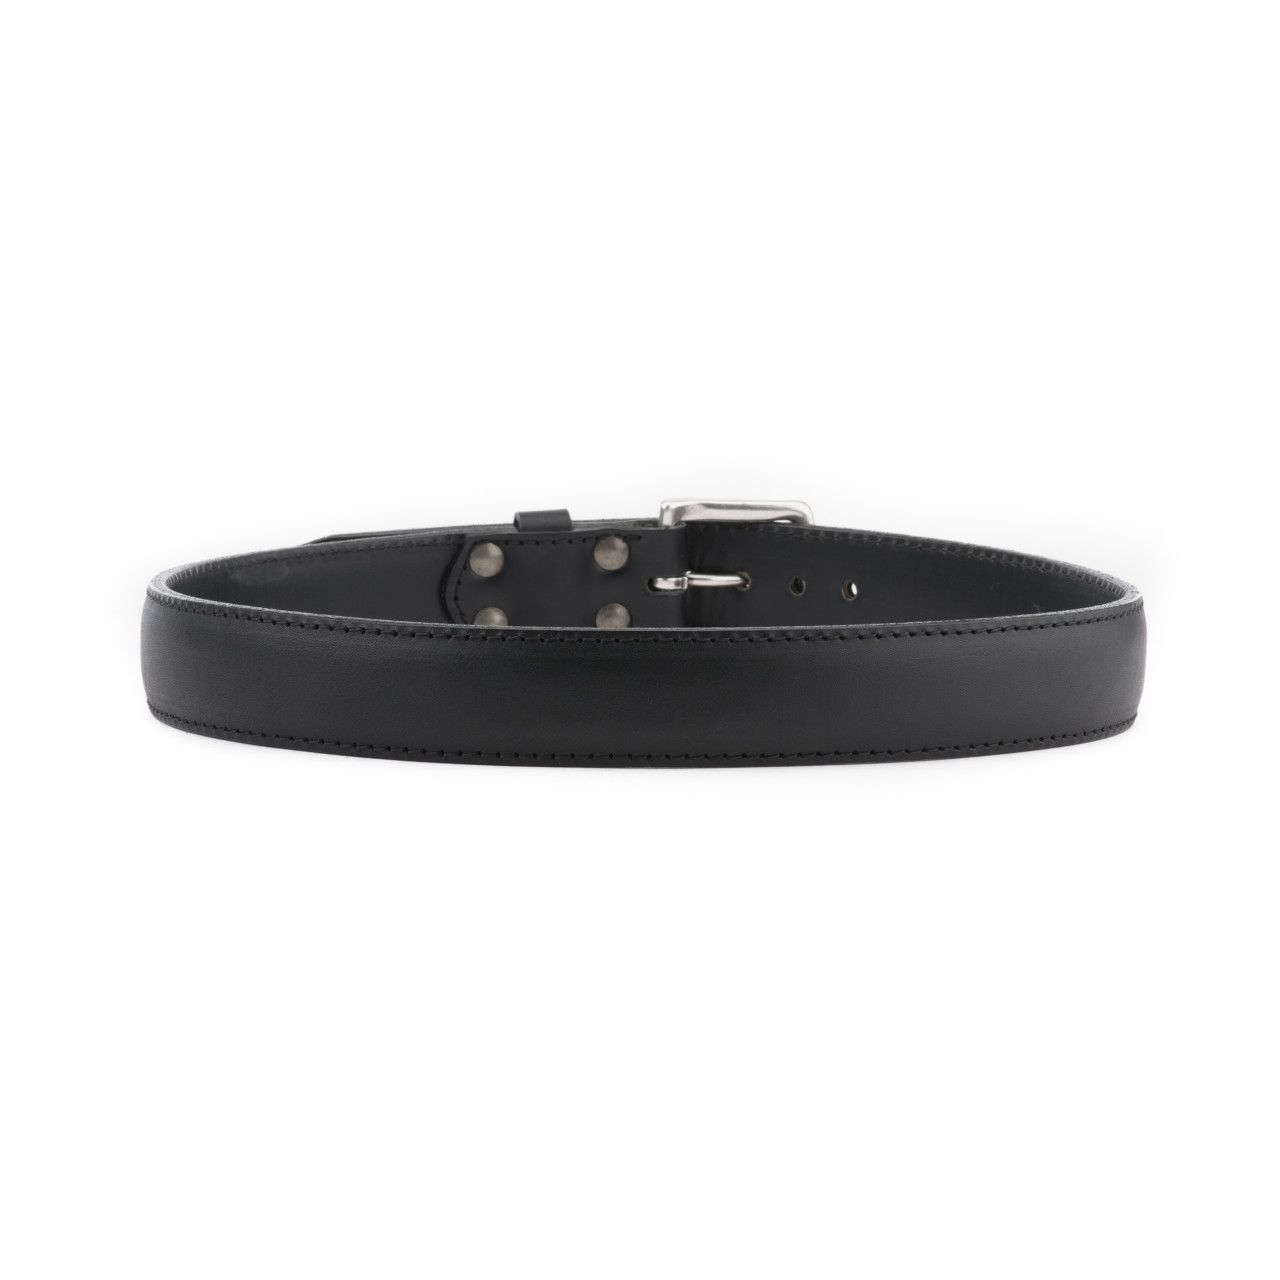 leather tow belt 34 inch in black leather